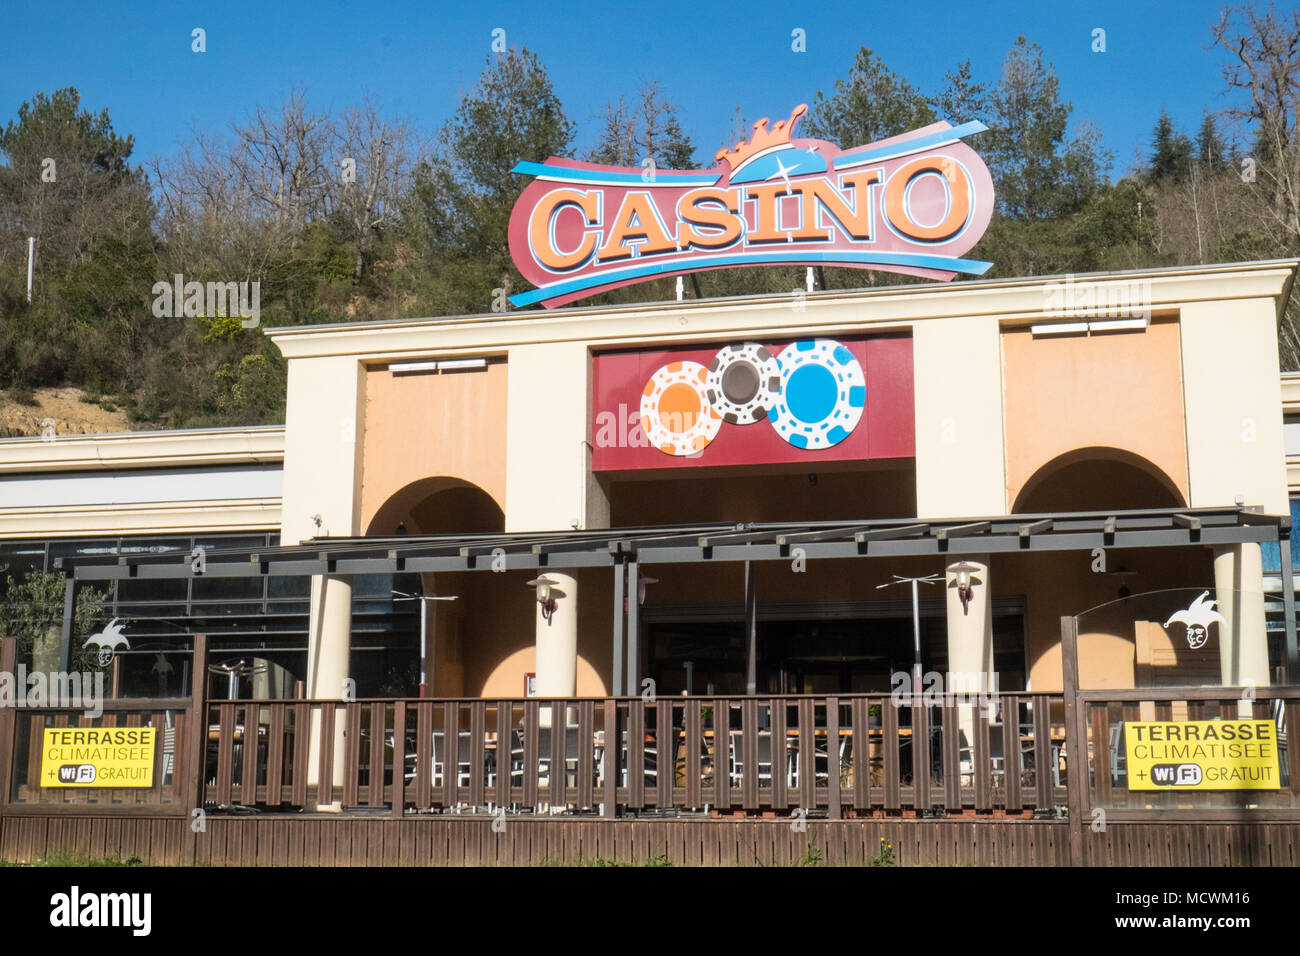 Exterior Of Outside Casino Structure Design On Roadside In Countryside Rural Location Near Alet Les Bains Aude Region South Of France Europe European Stock Photo Alamy